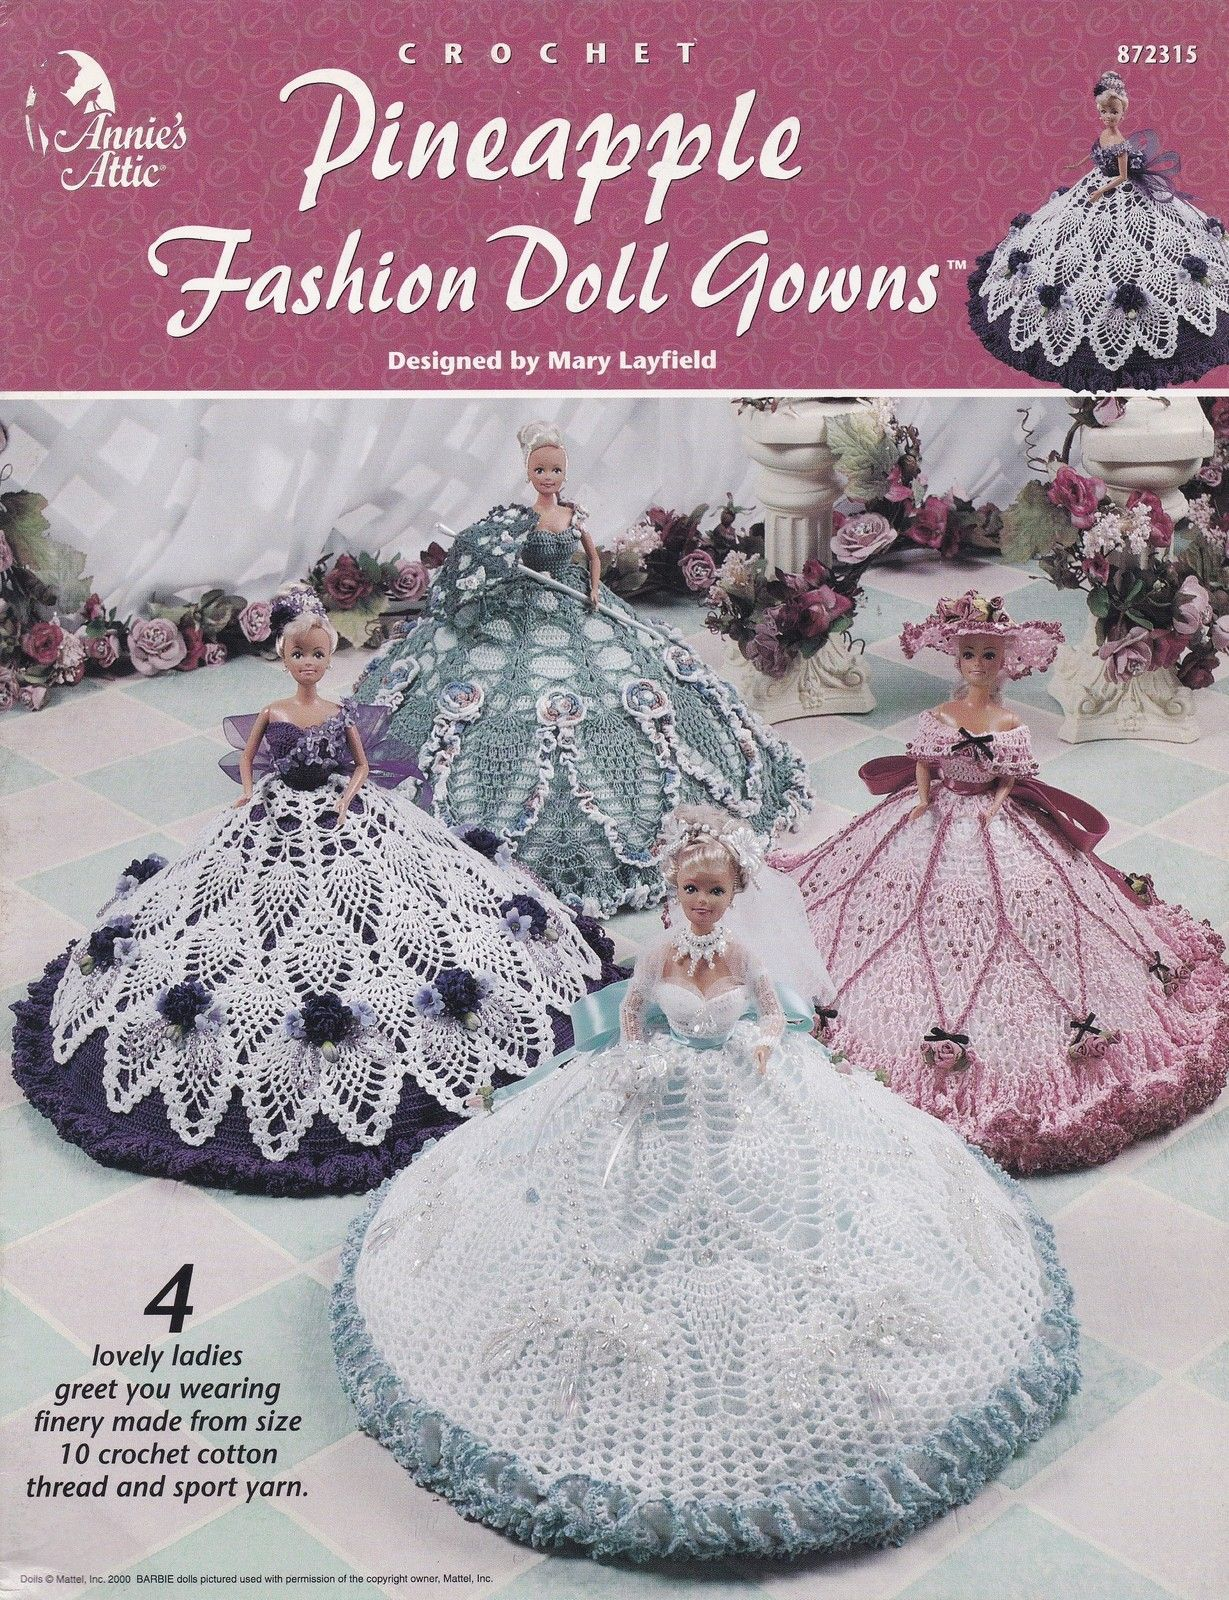 Pineapple Fashion Doll Gowns, Annie's Crochet Clothes Pattern Booklet 872315 - Patterns-Contemporary